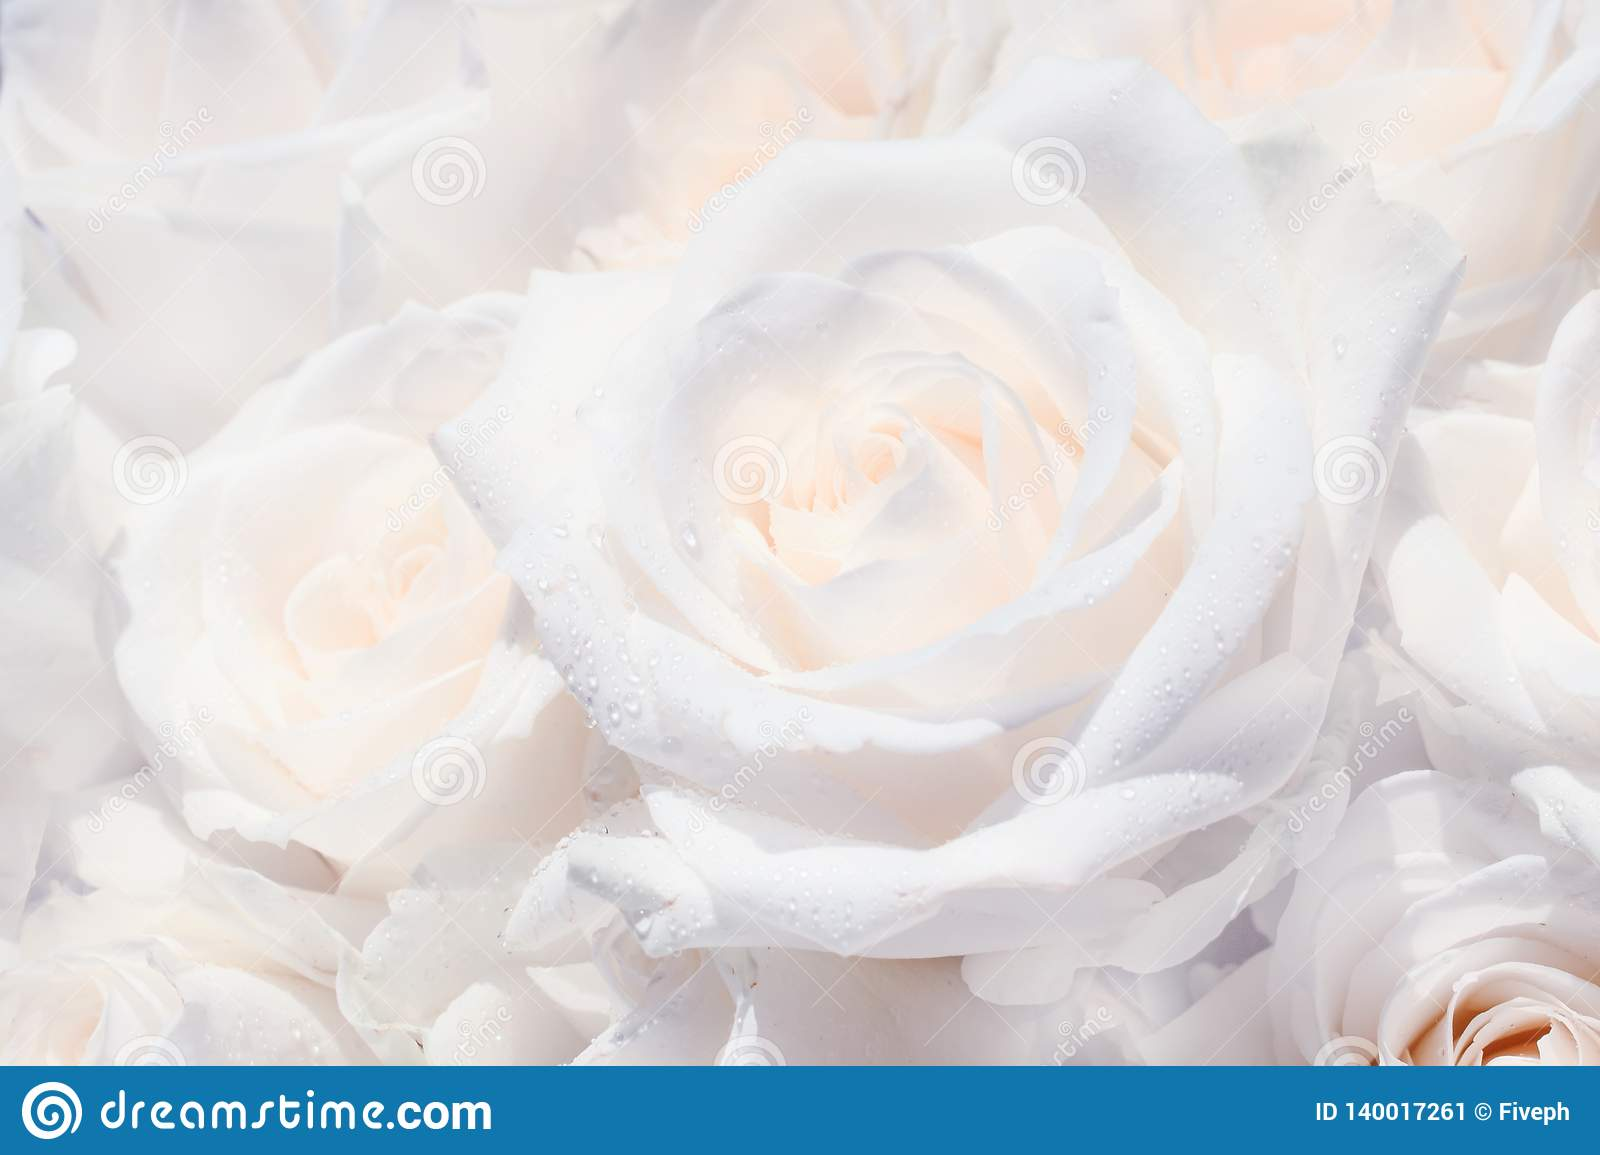 Natural background, bouquet with white roses with dew drops, close-up, selective focus